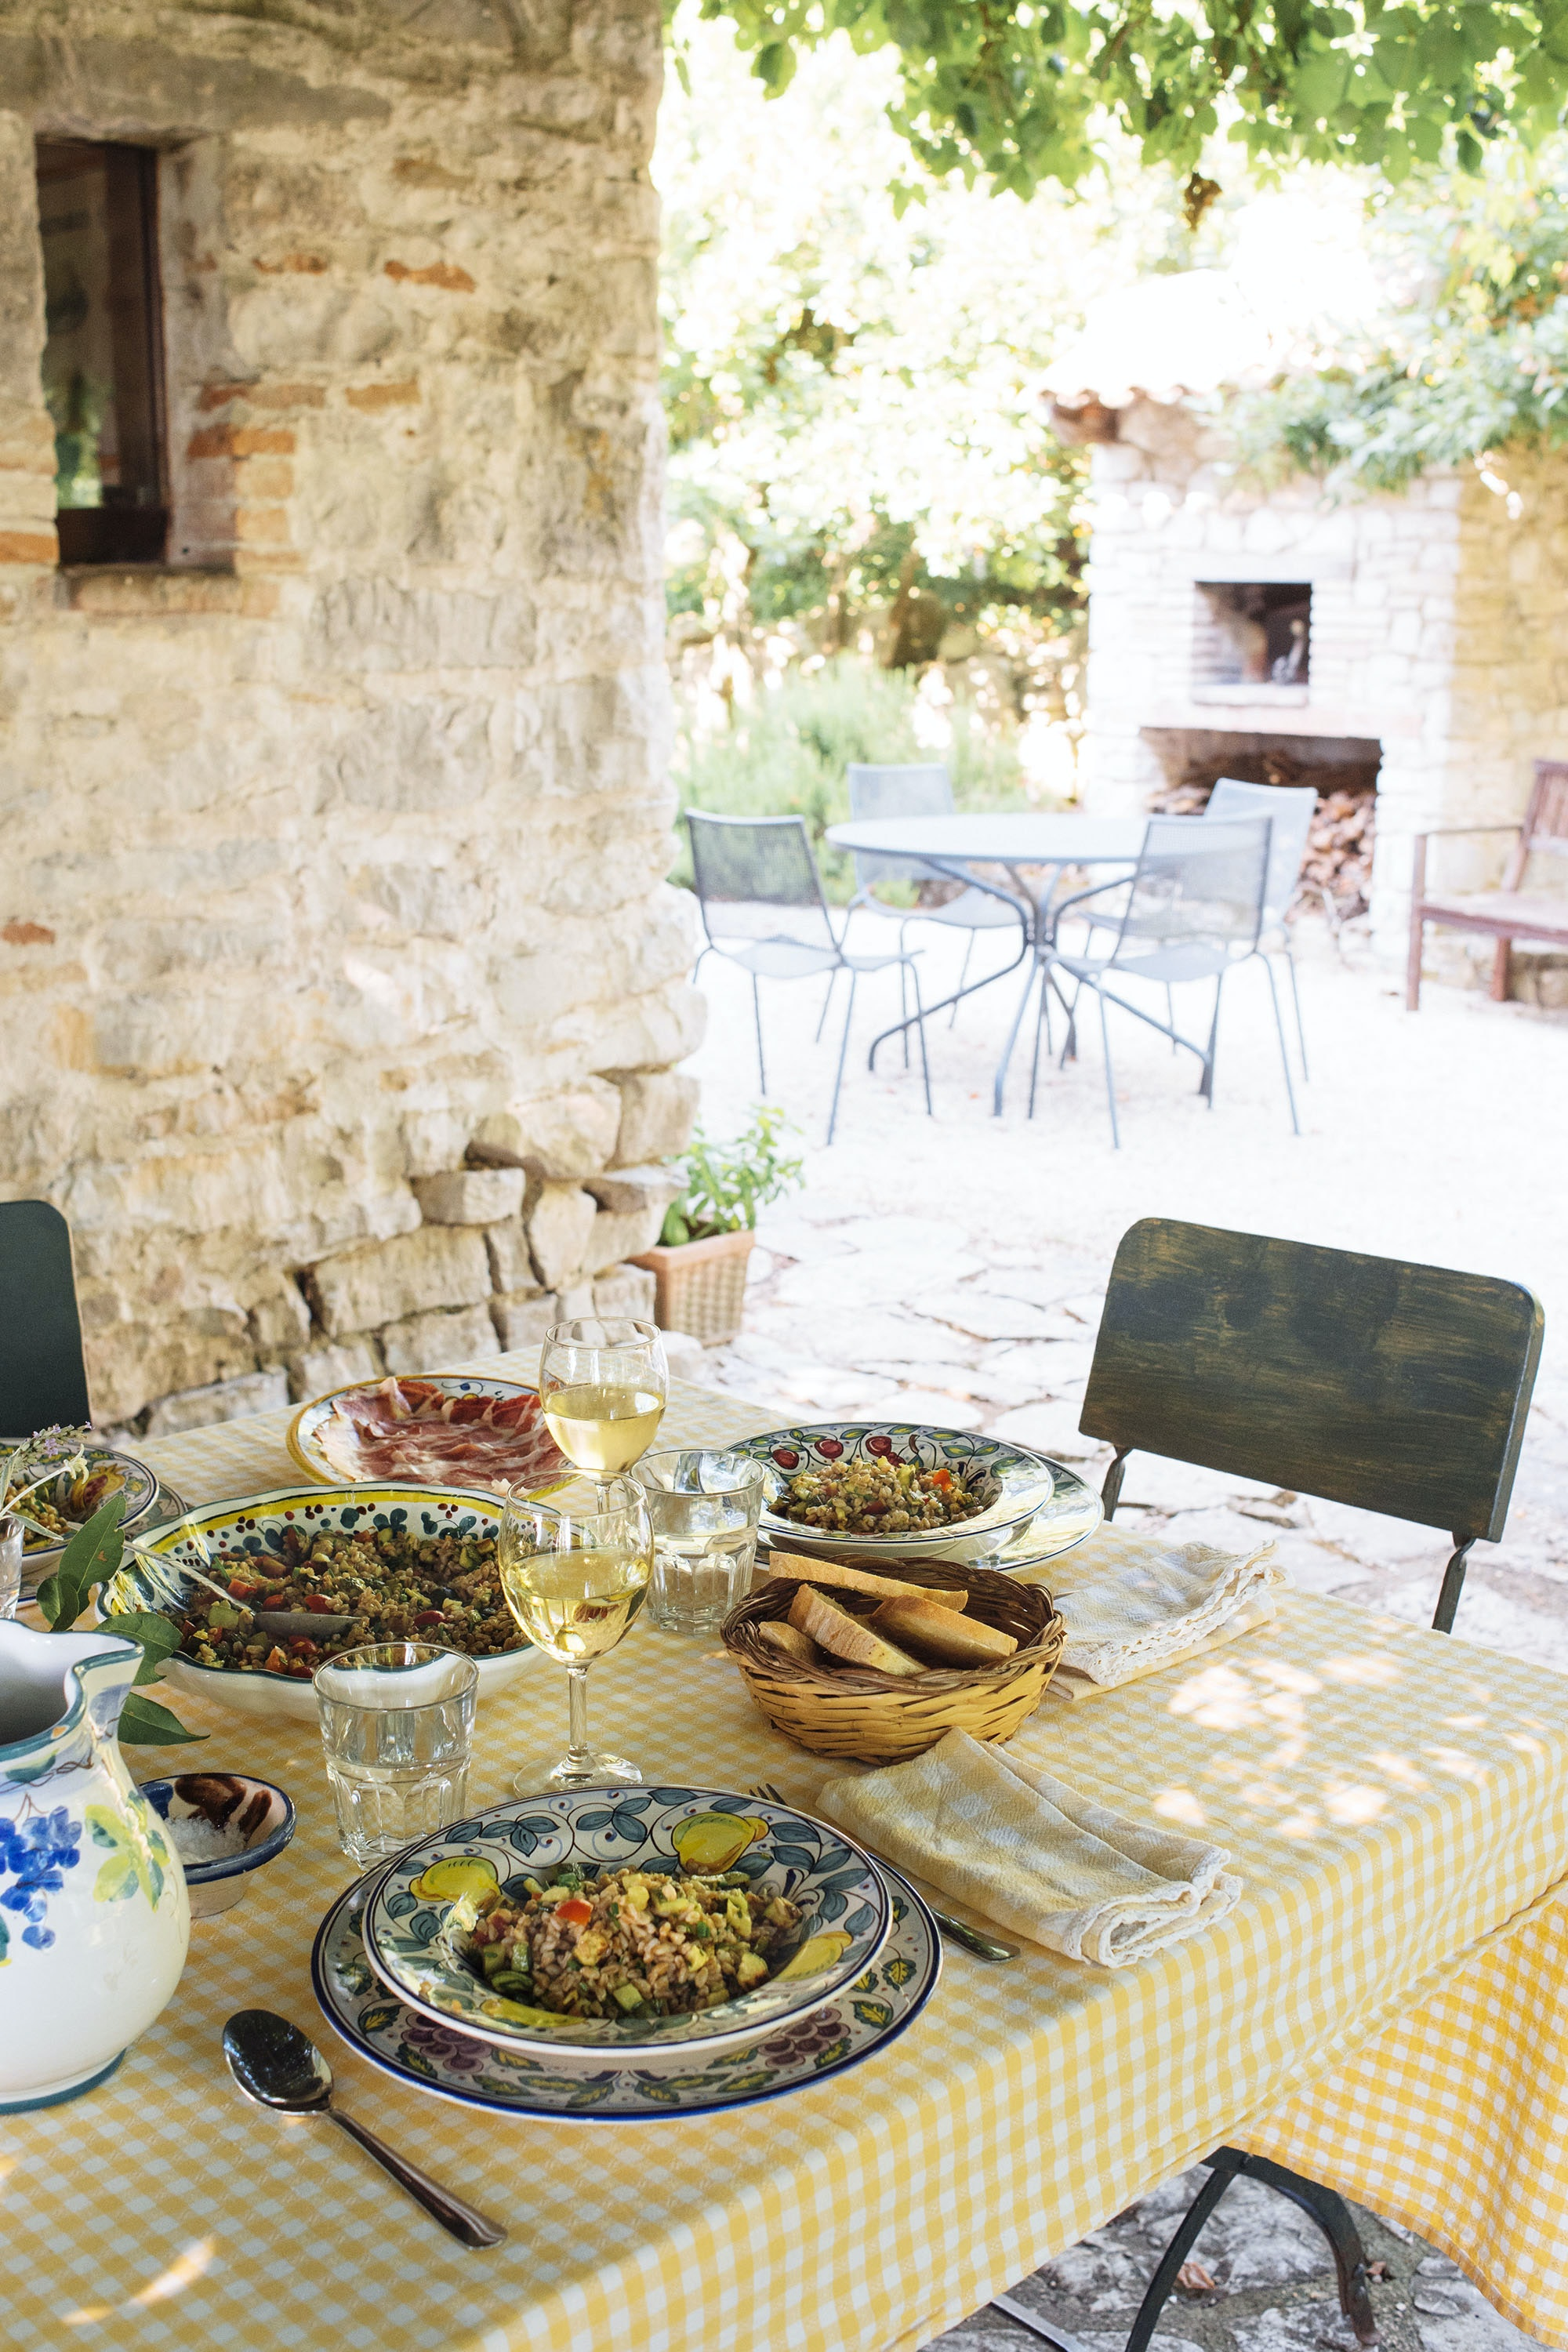 Umbria delivers one delicious meal after the next.